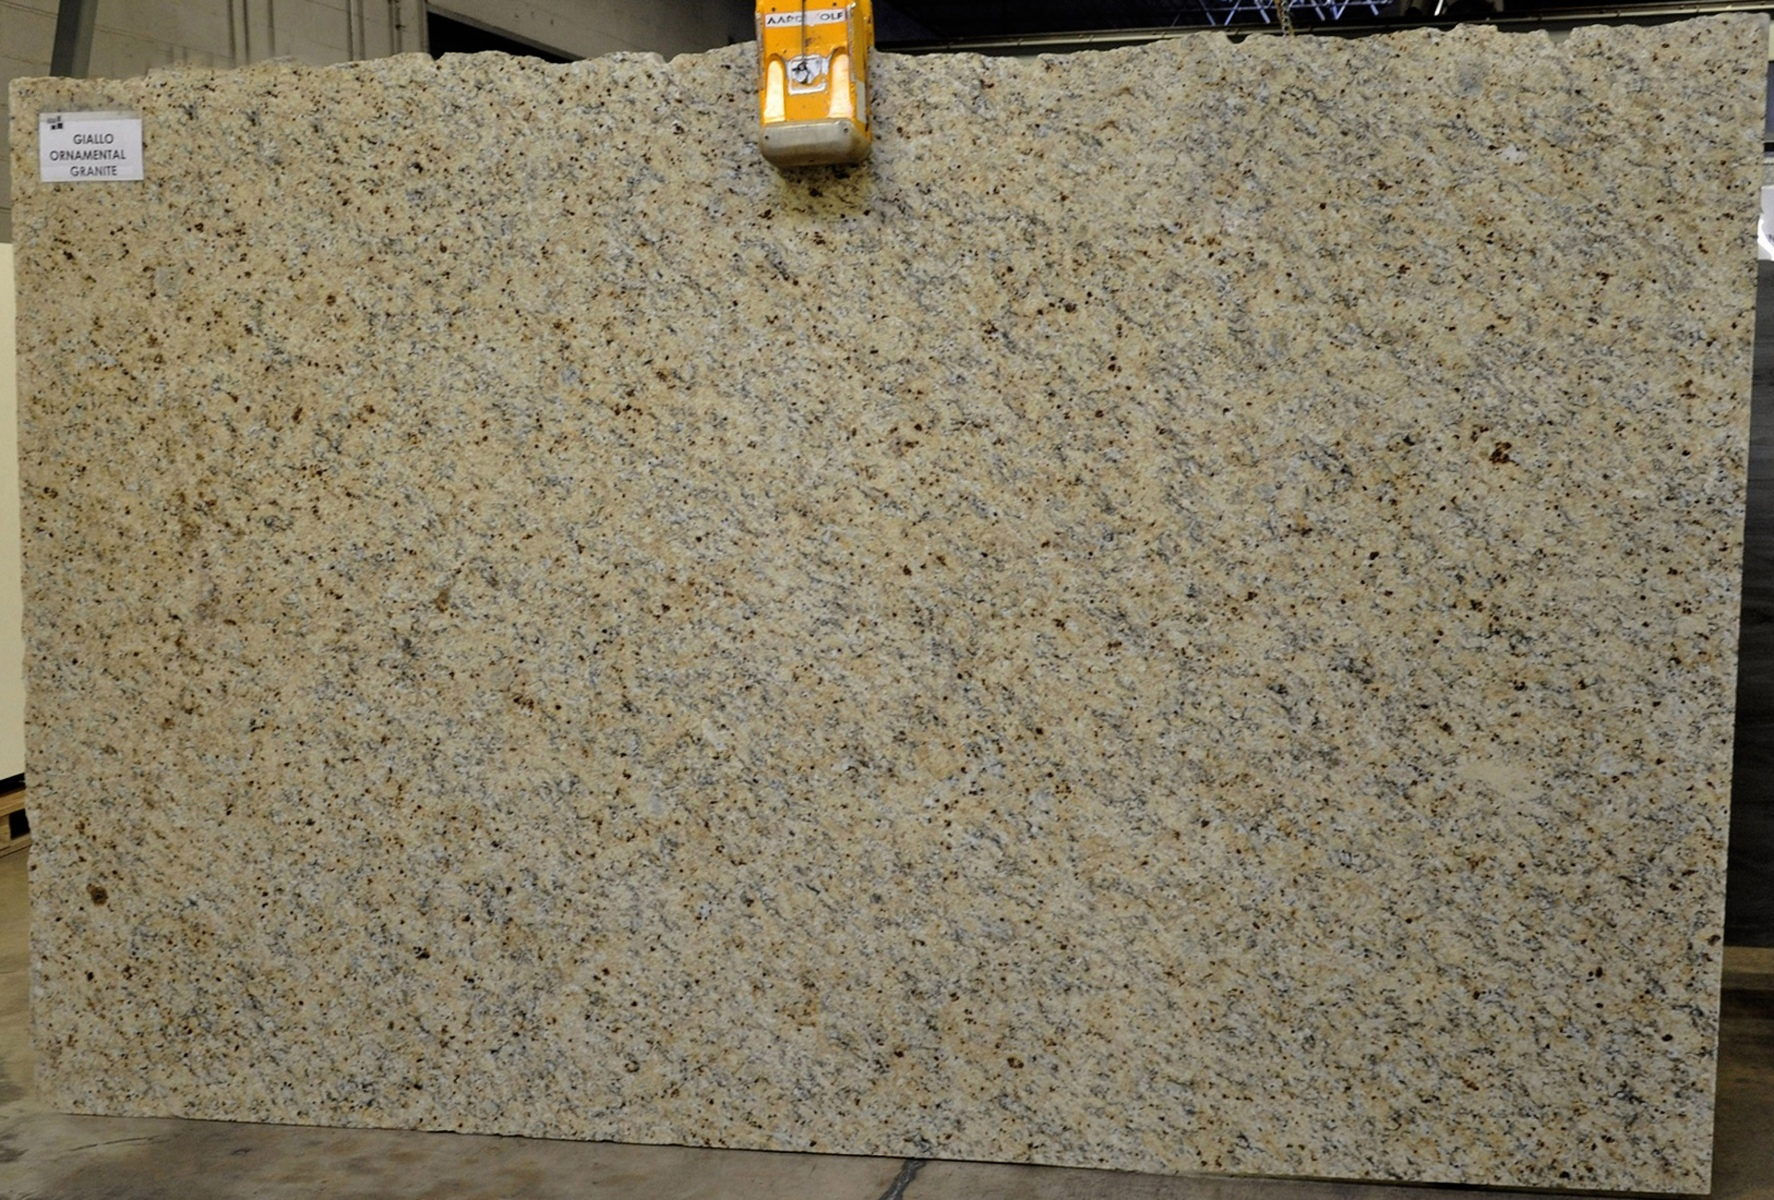 Giallo Ornamental 3 cm lot (36)